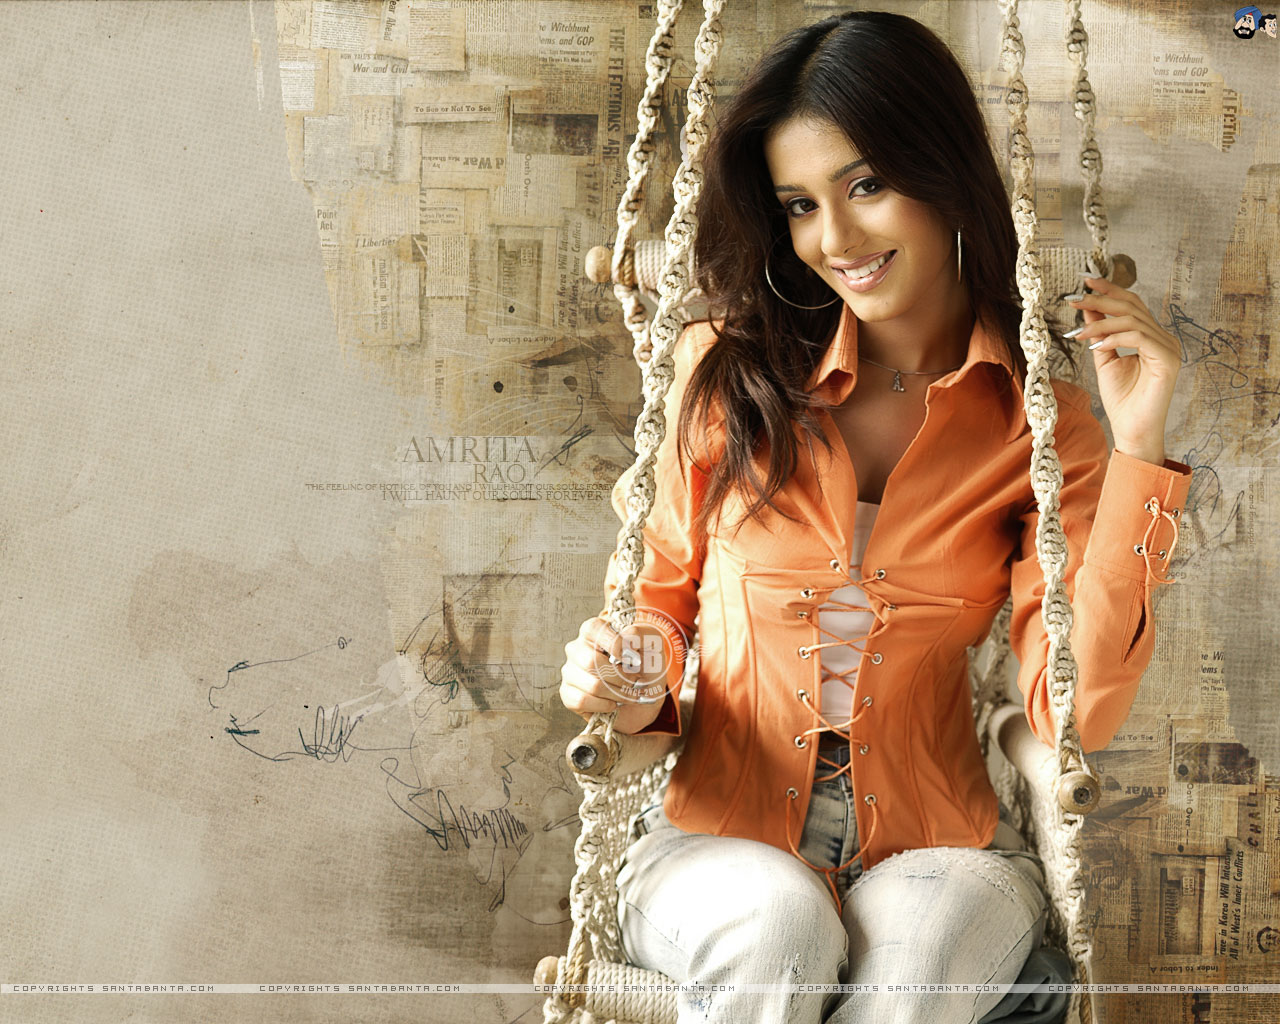 http://3.bp.blogspot.com/-60UCPx4NRqQ/TdOpiiGk3pI/AAAAAAAABUY/ONtXjaEz-XQ/s1600/amrita-rao-high-resolution-hot-wallpapers.jpg